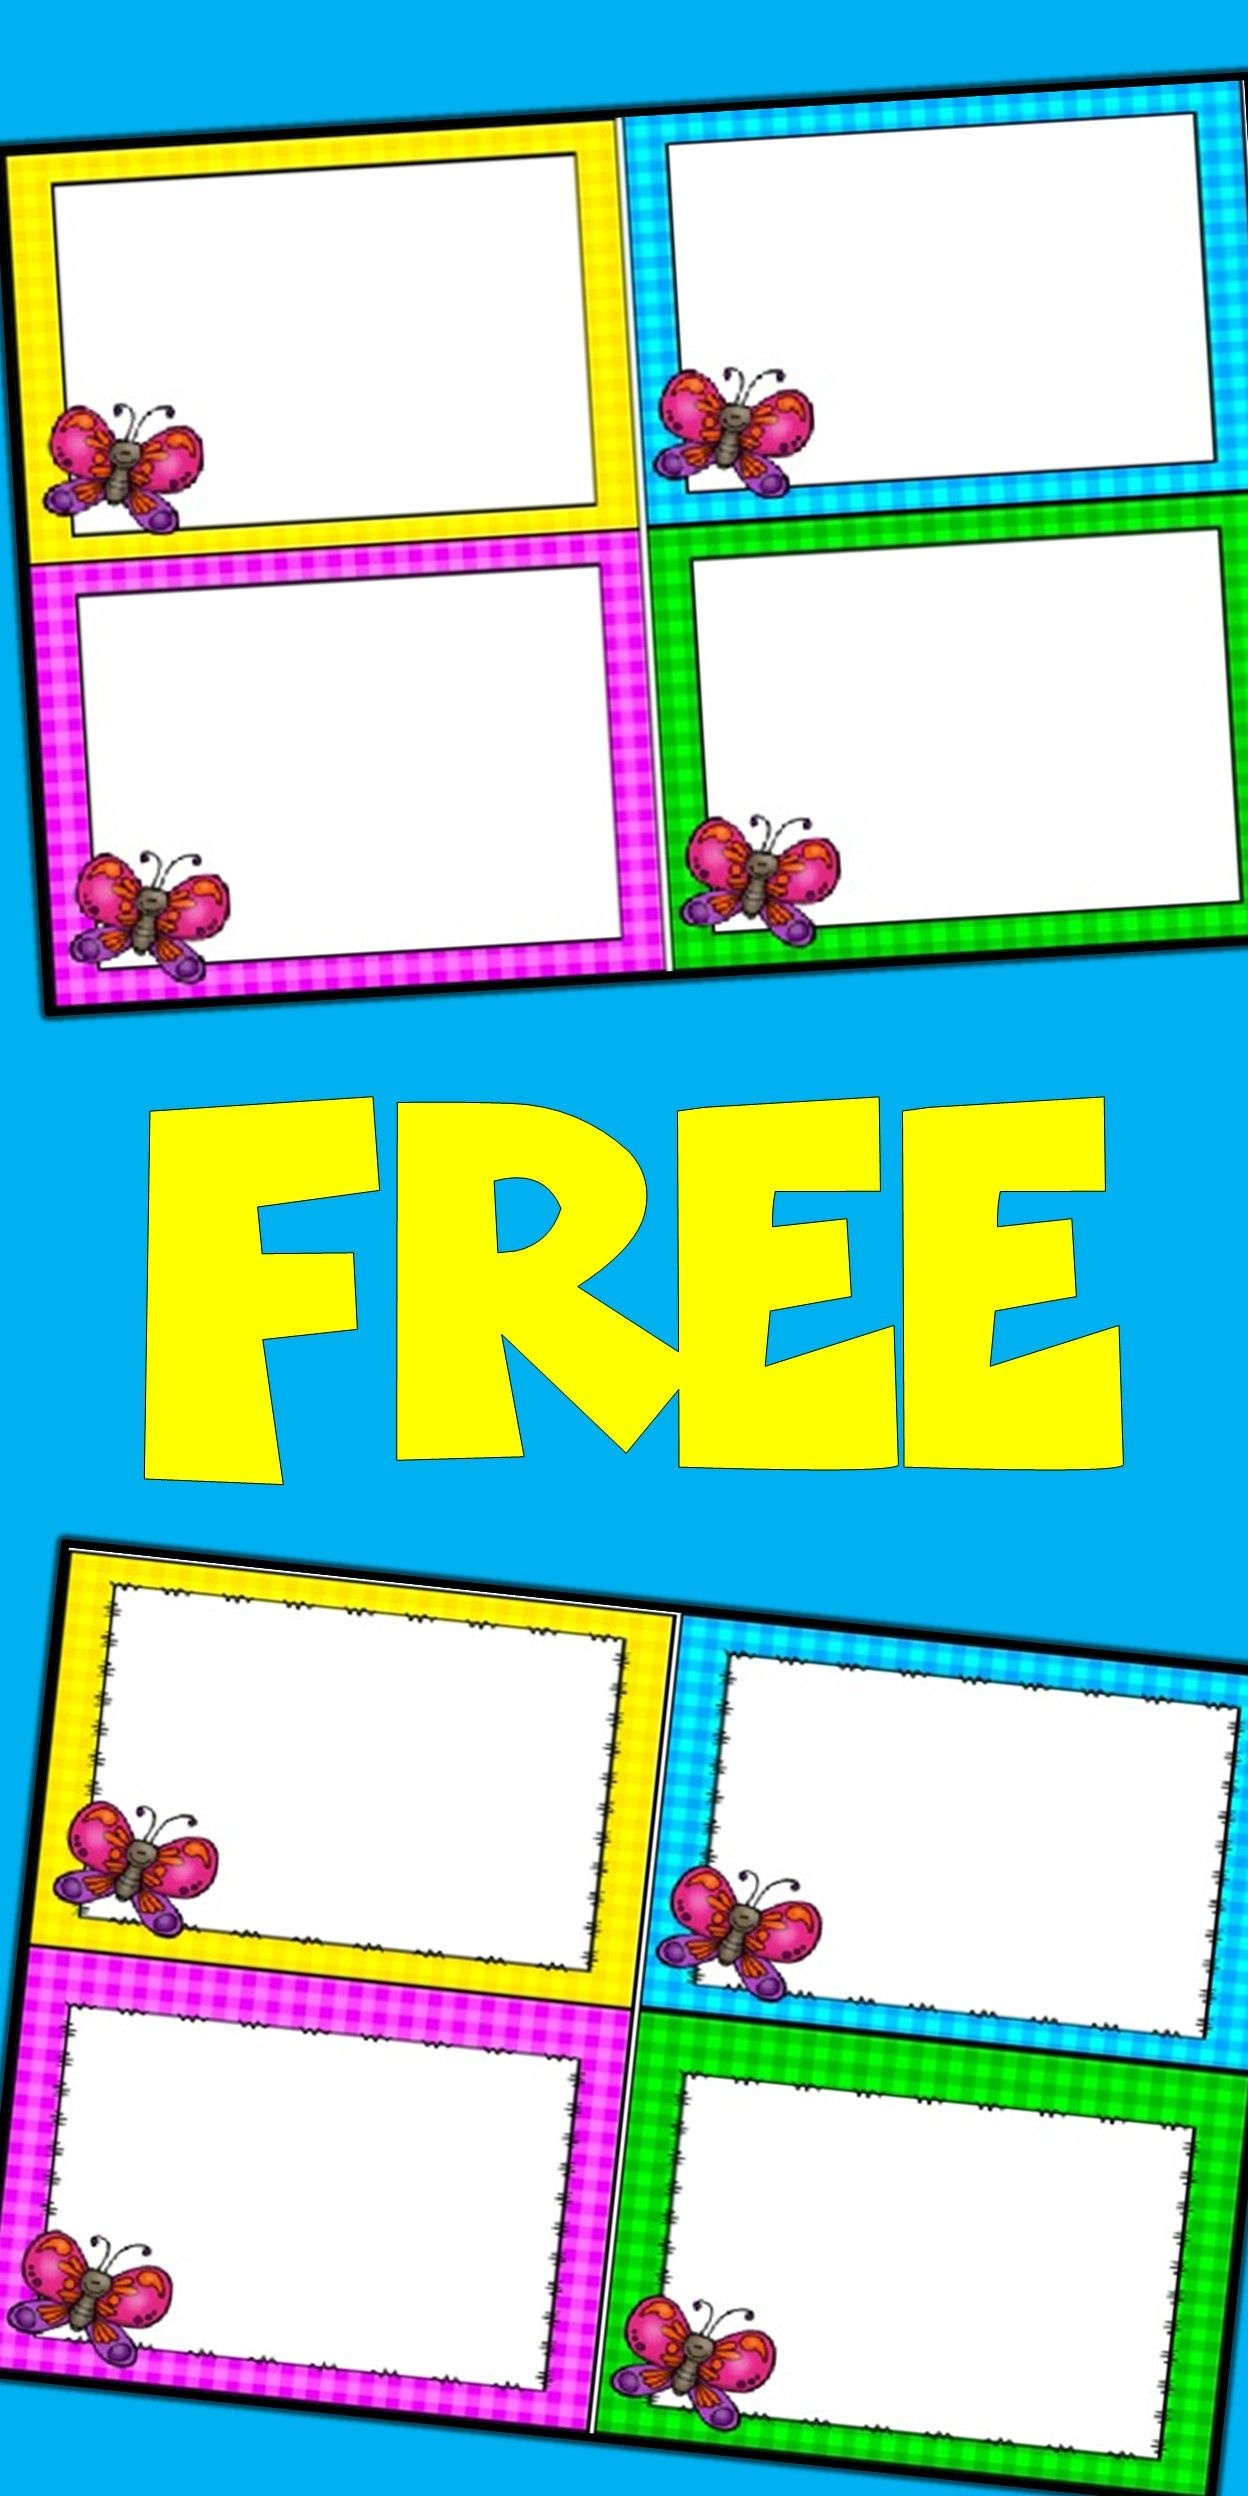 Free Editable Spring Card Templates   Butterflies   Butterfly - Free Printable Blank Task Cards